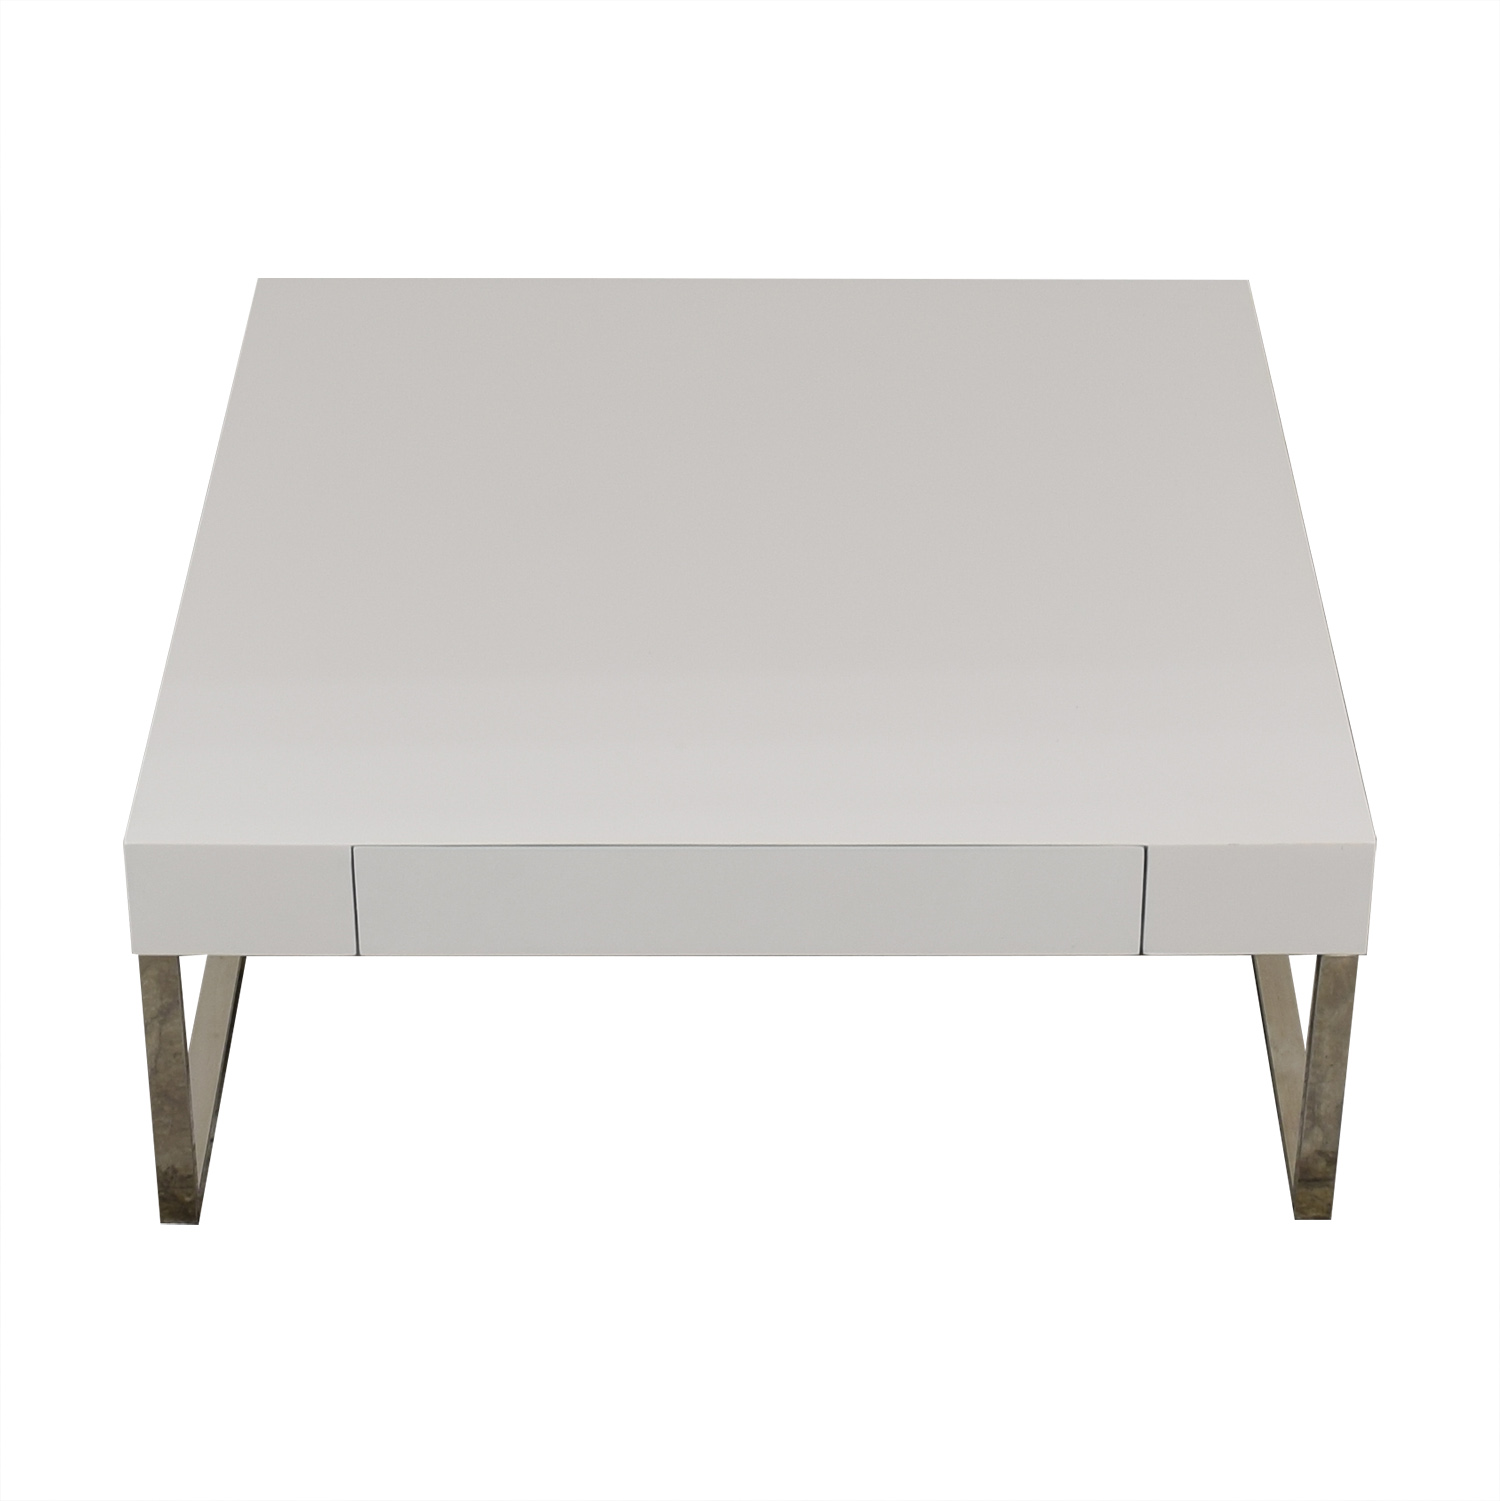 Modani Modani Gavino Coffee Table ct